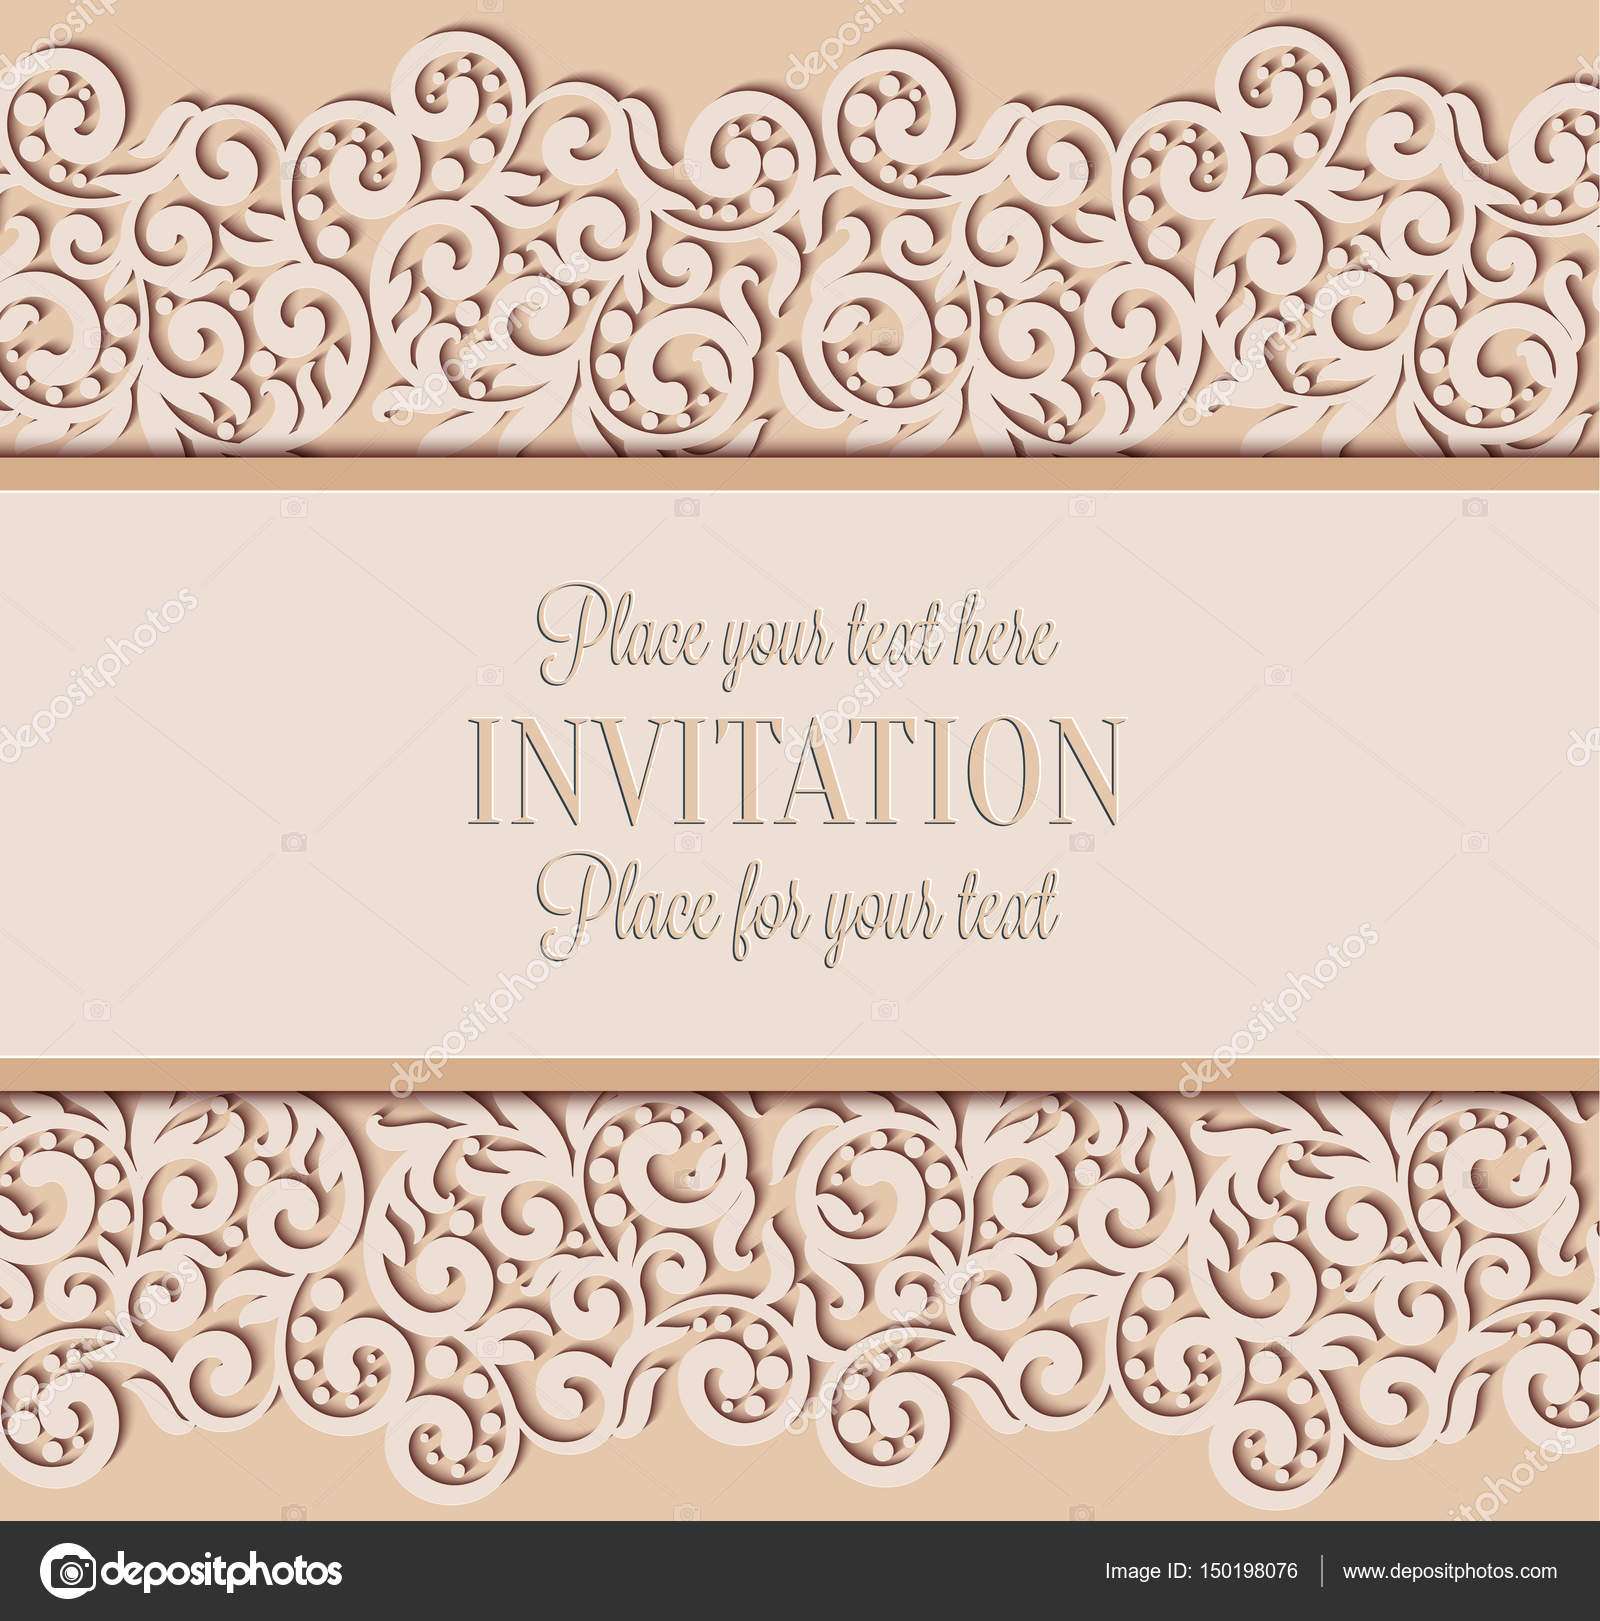 Vector Floral Swirls Decorated Invitation Card Abstract 3D Background Design Template With Place For Text Beige Simple Lace Shadow Paper Cut Effect